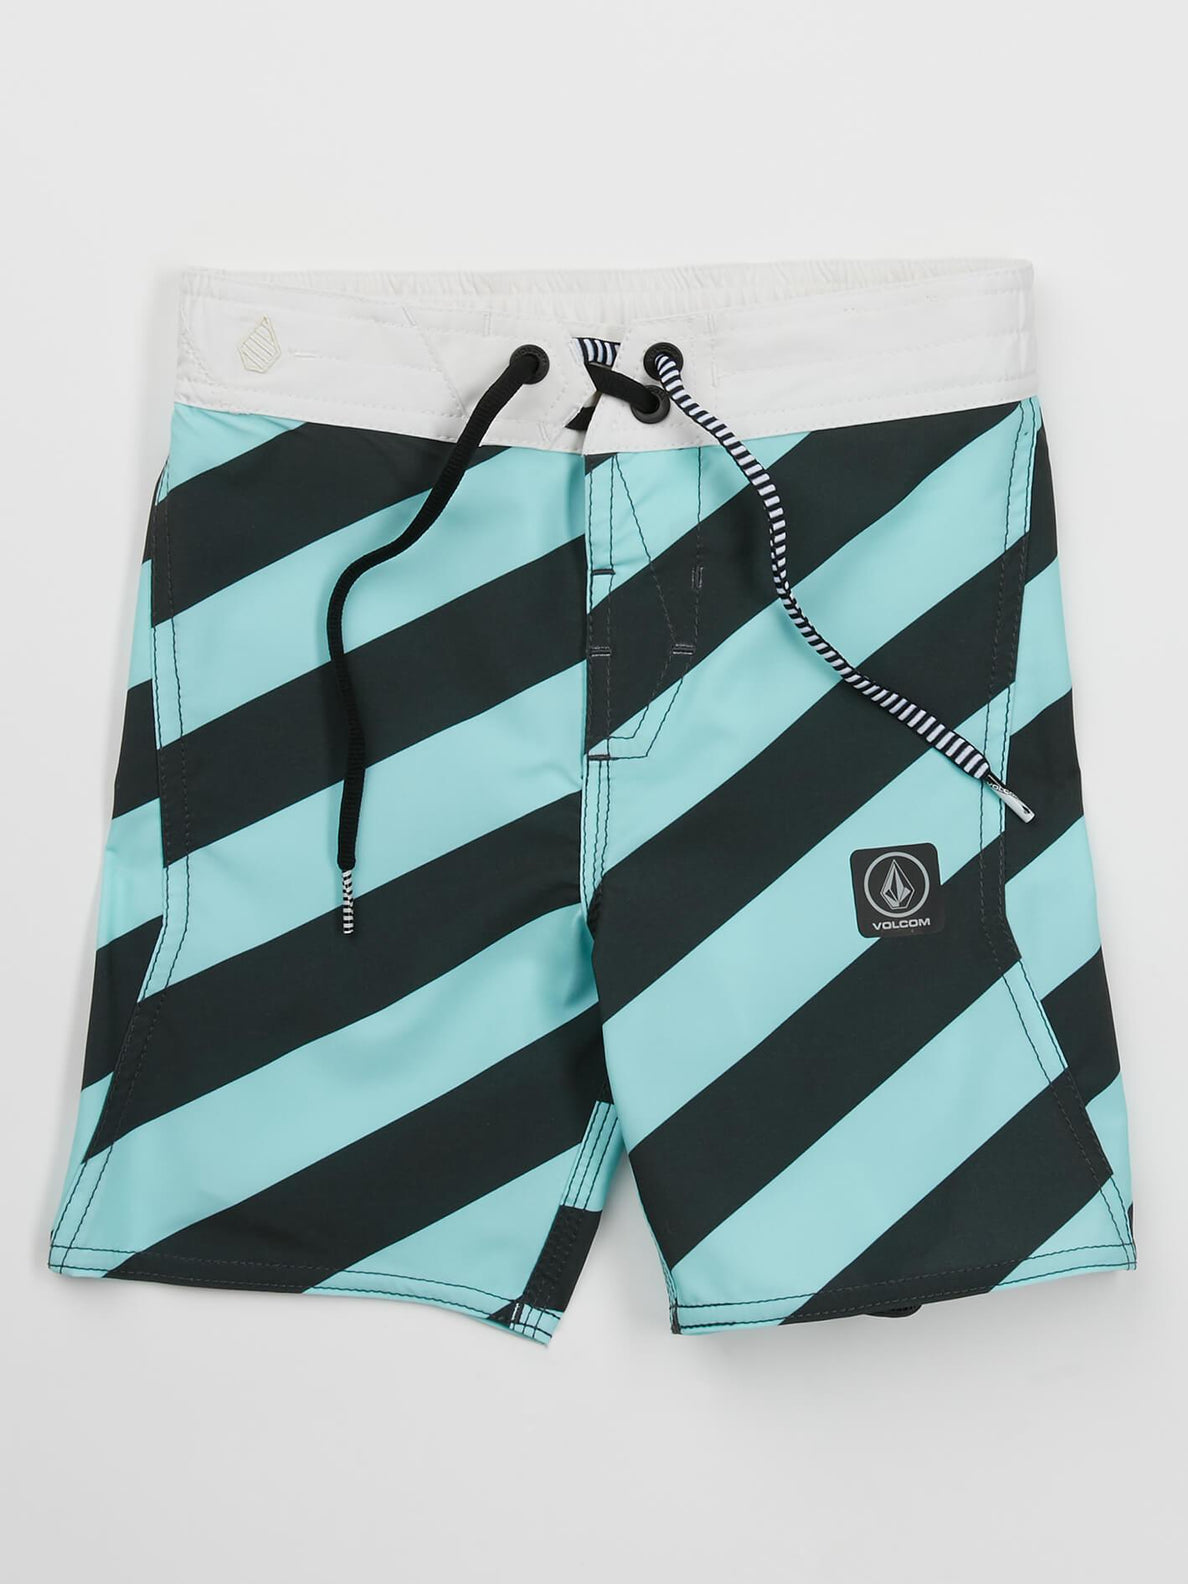 Little Boys Stripey Elastic Boardshorts In Pale Aqua, Front View